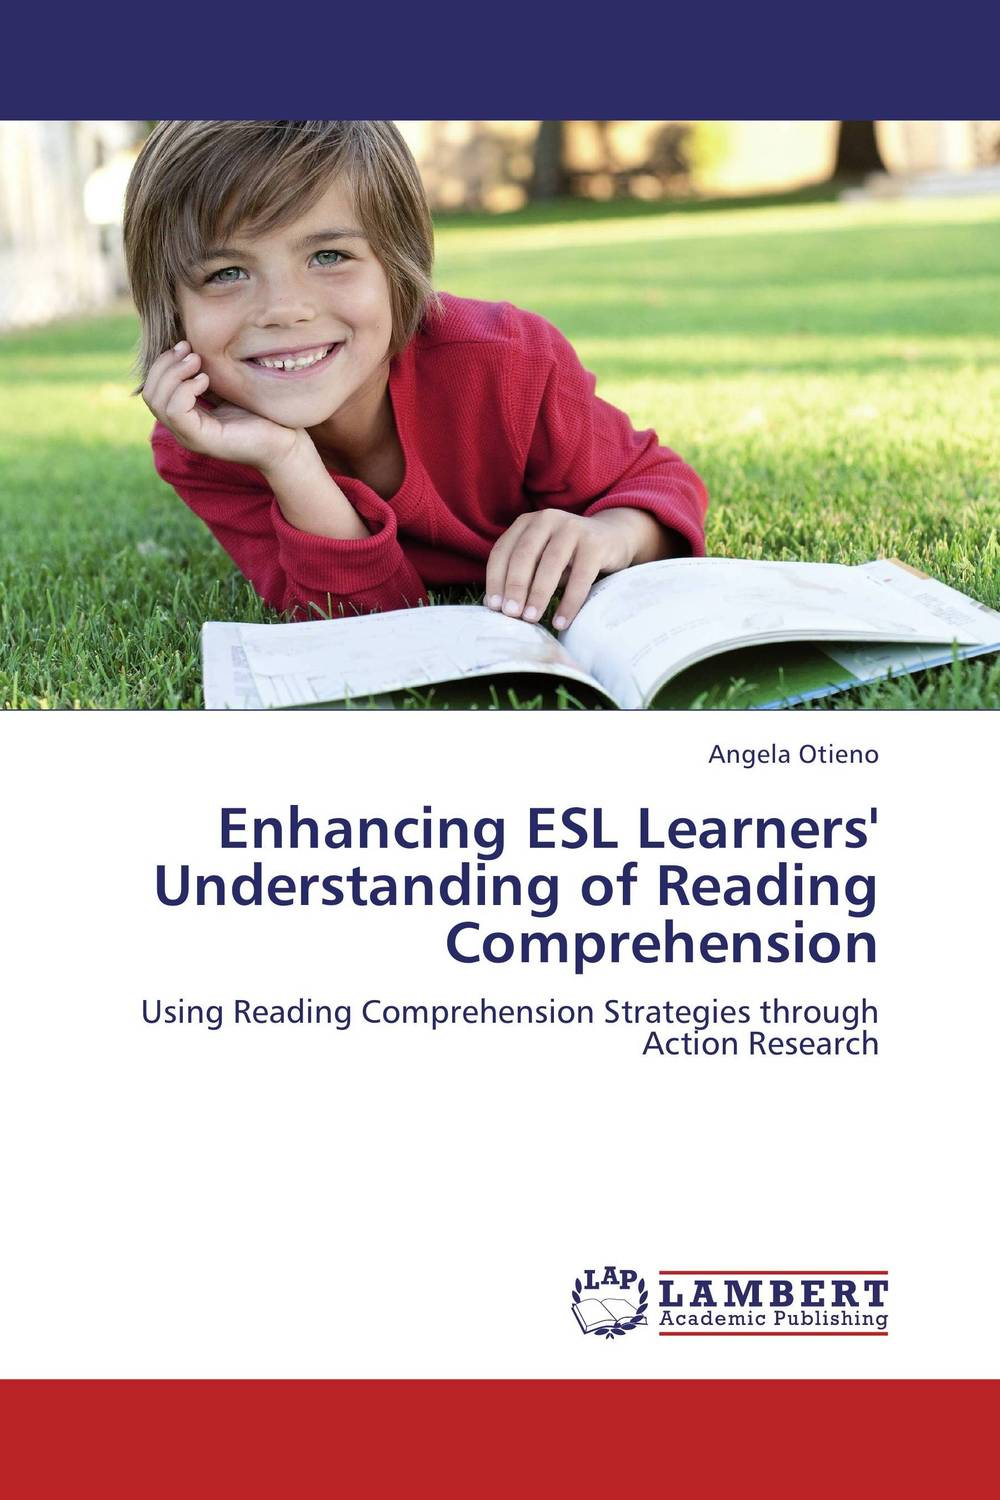 Enhancing ESL Learners' Understanding of Reading Comprehension